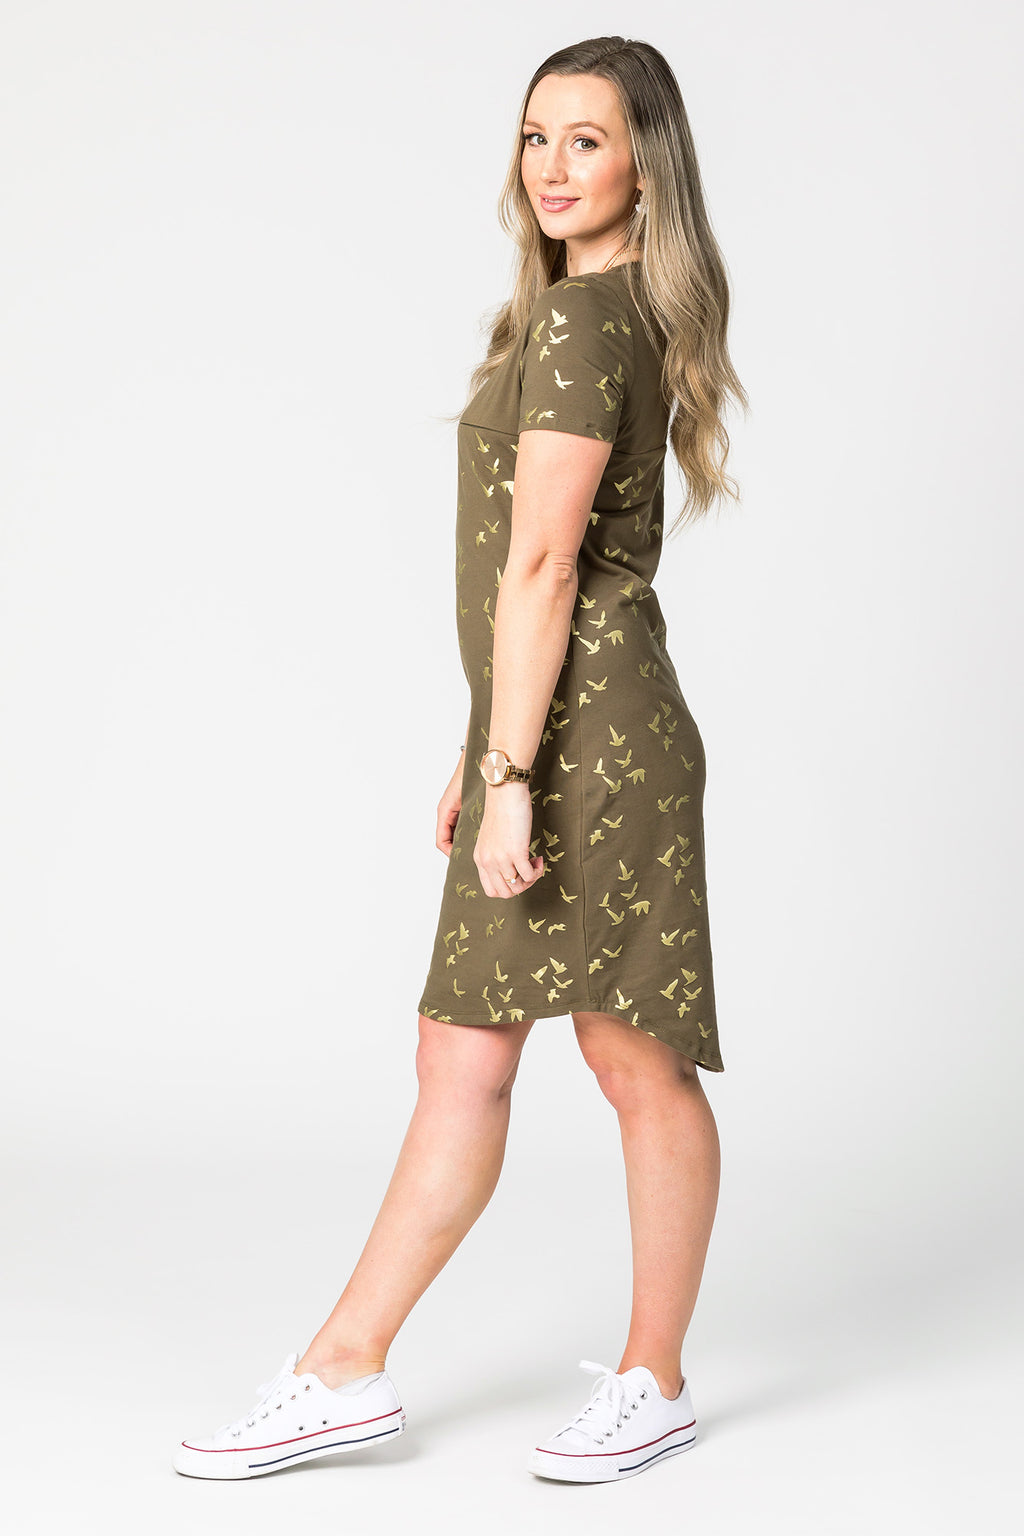 Gold Foil Birds Printed Dress - Non Breastfeeding